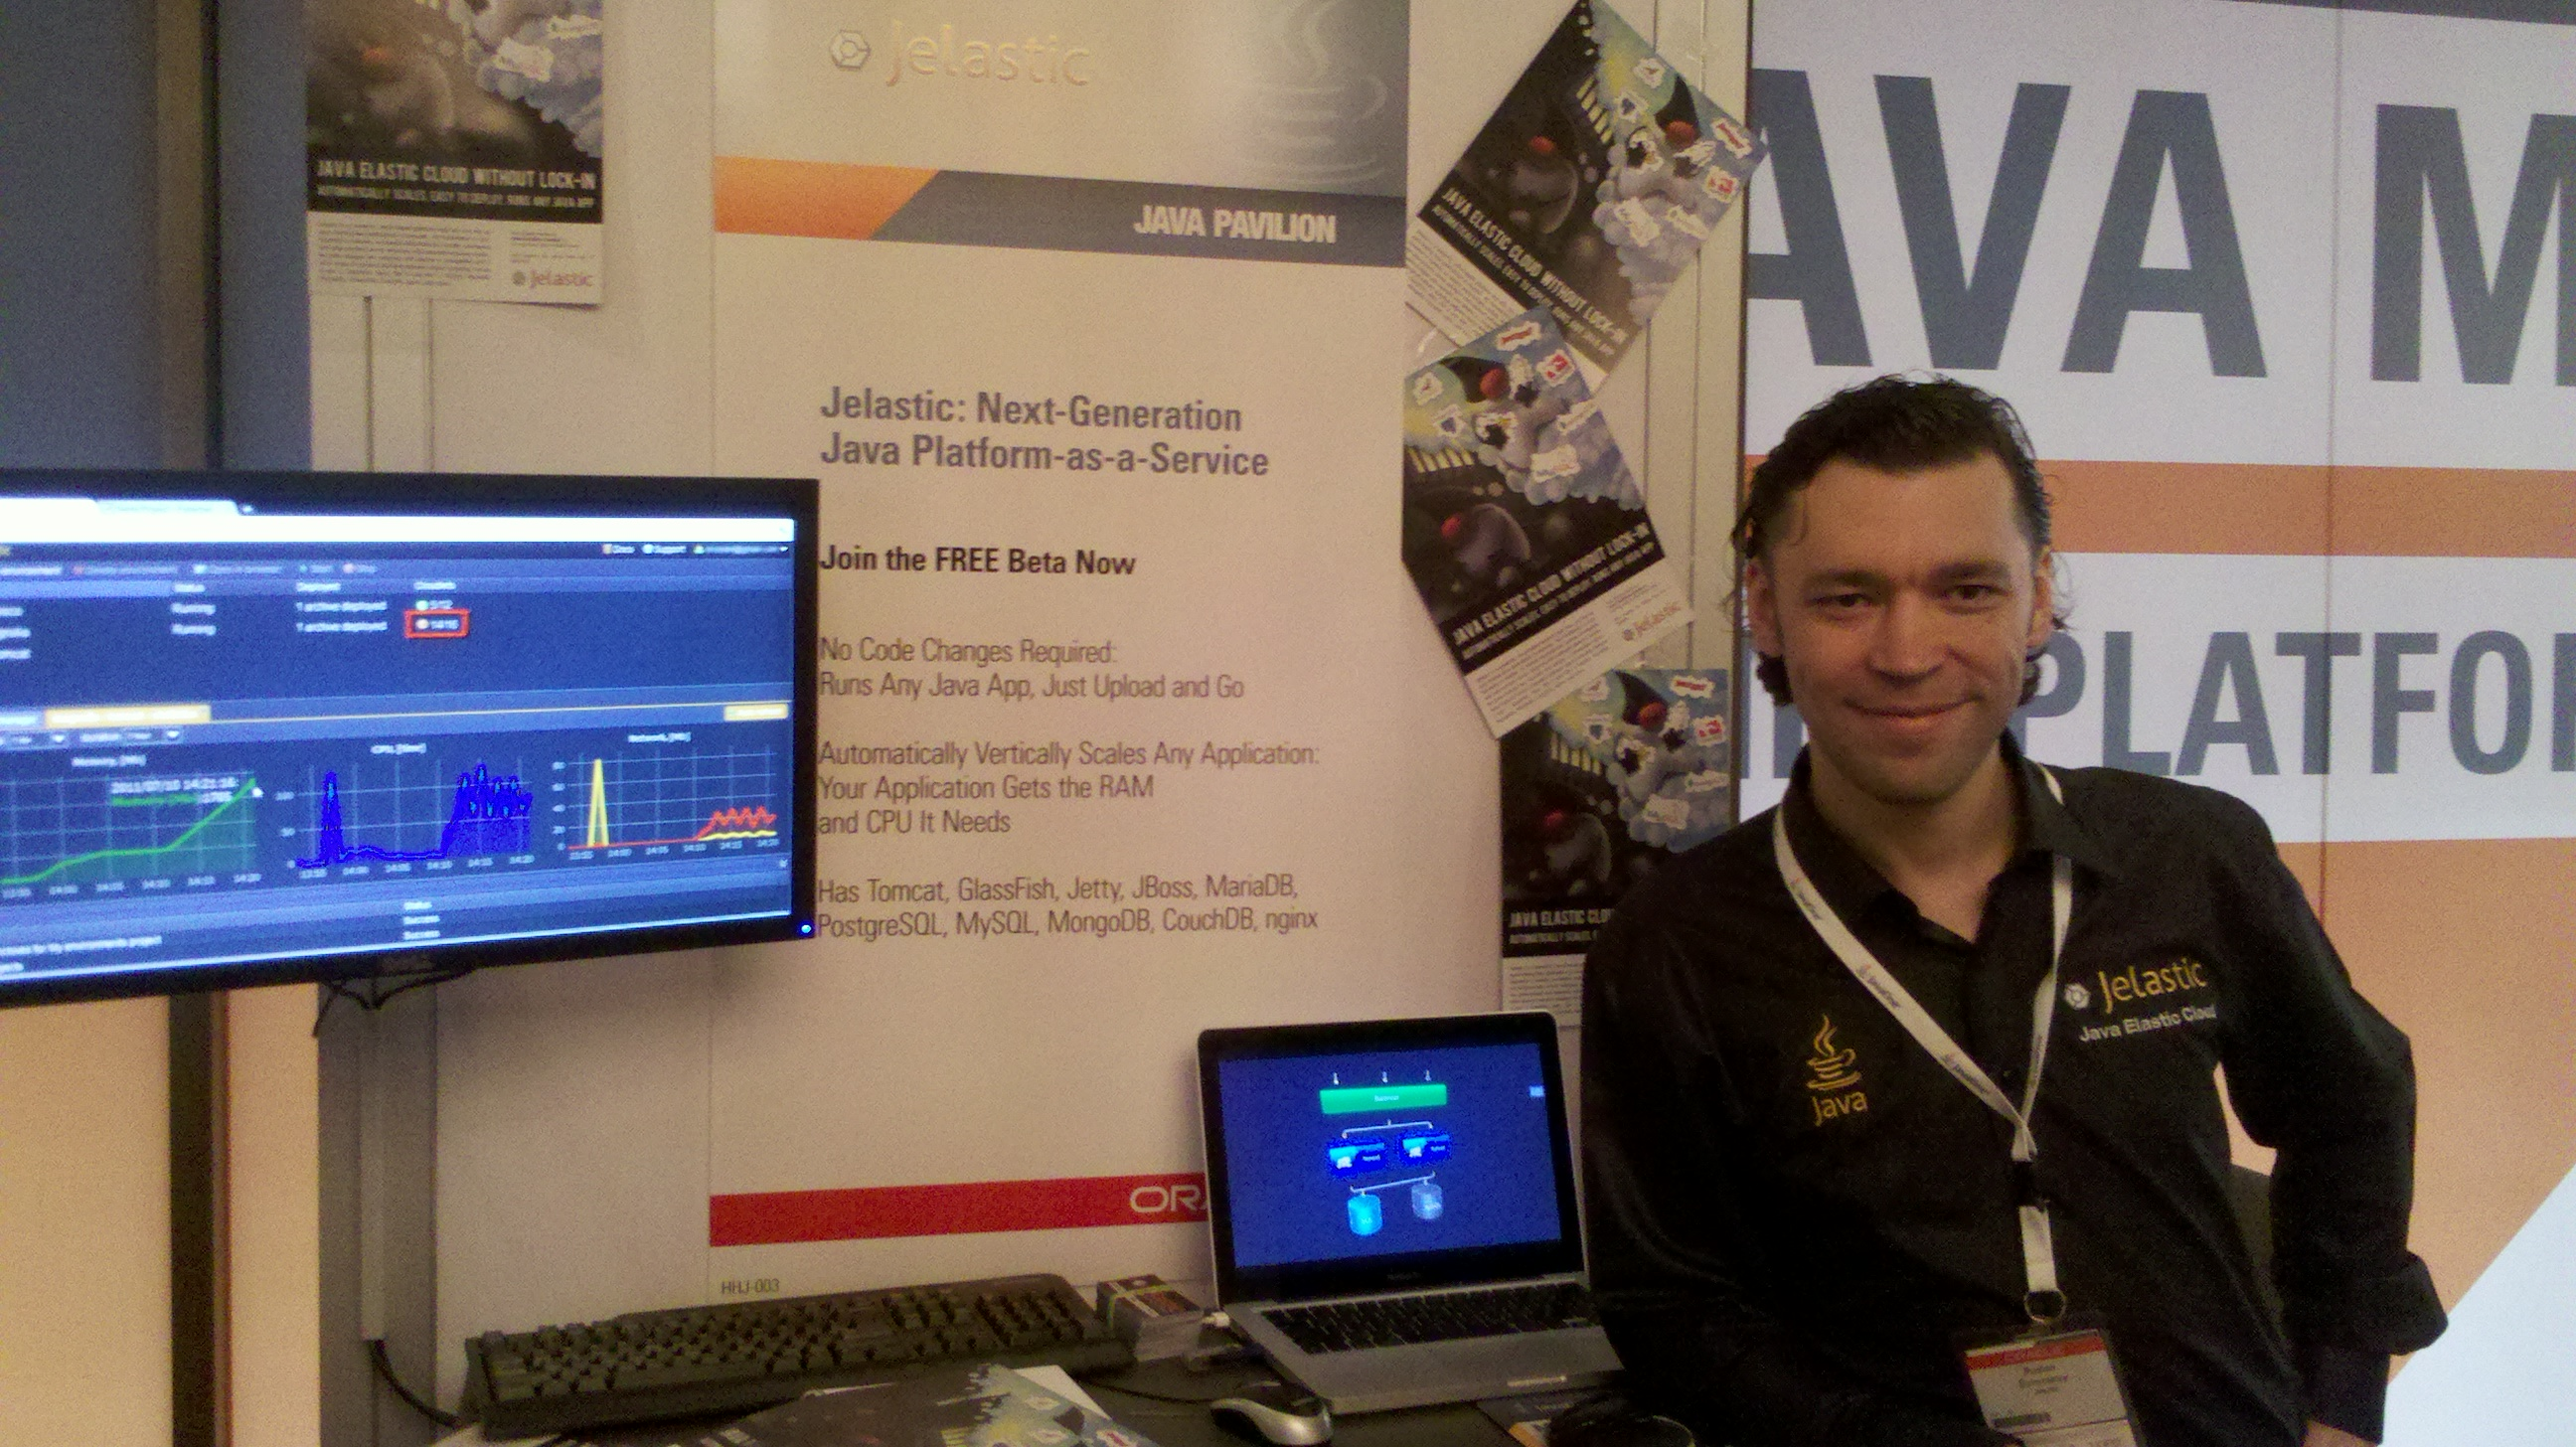 Hivext CEO Ruslan by Jelastic booth at JavaOne